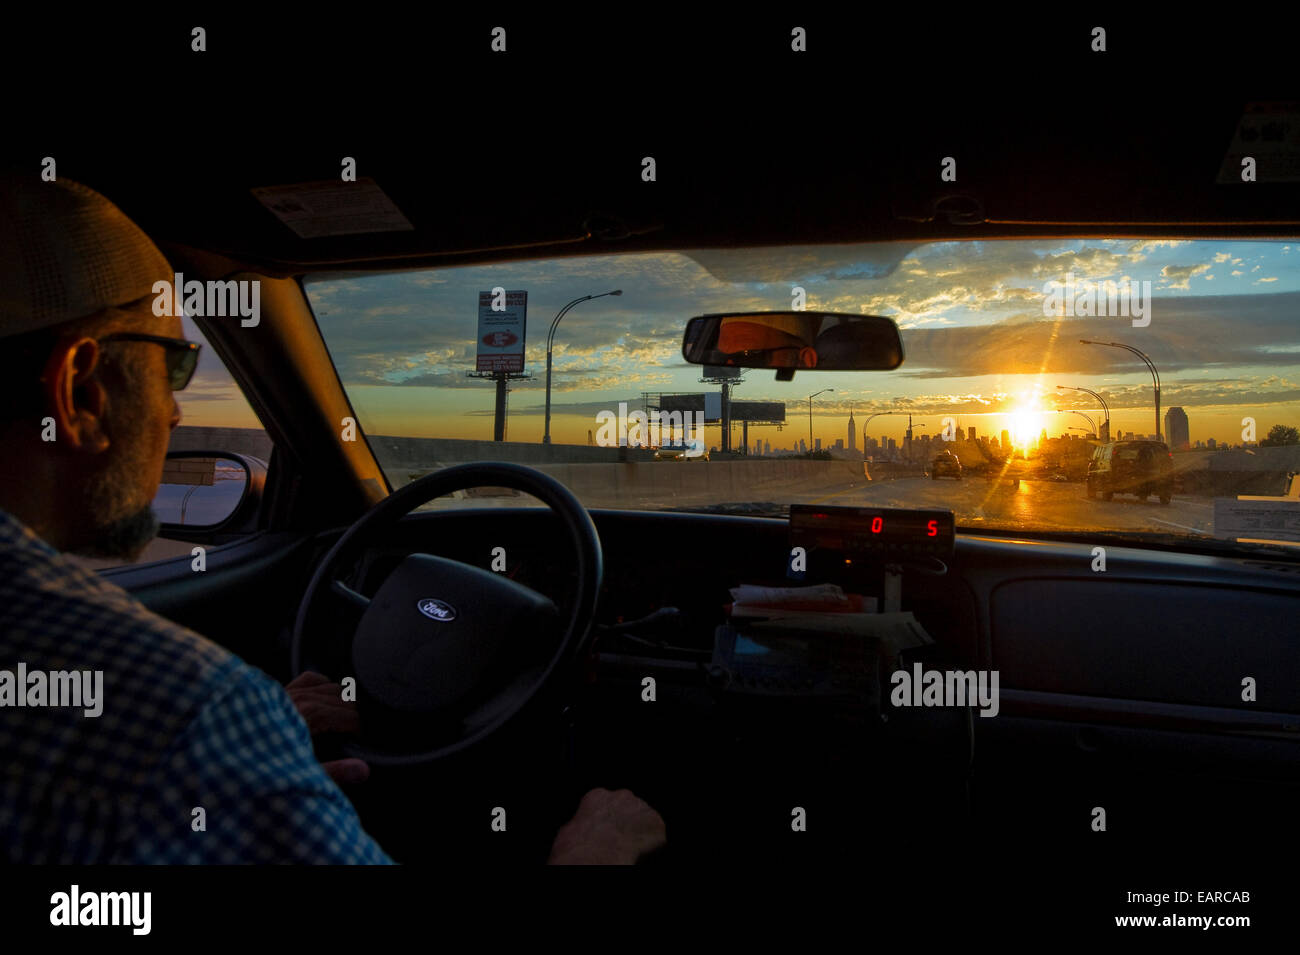 Taxi driver and the Manhattan skyline at sunset, Manhattan, New York City, New York, United States - Stock Image